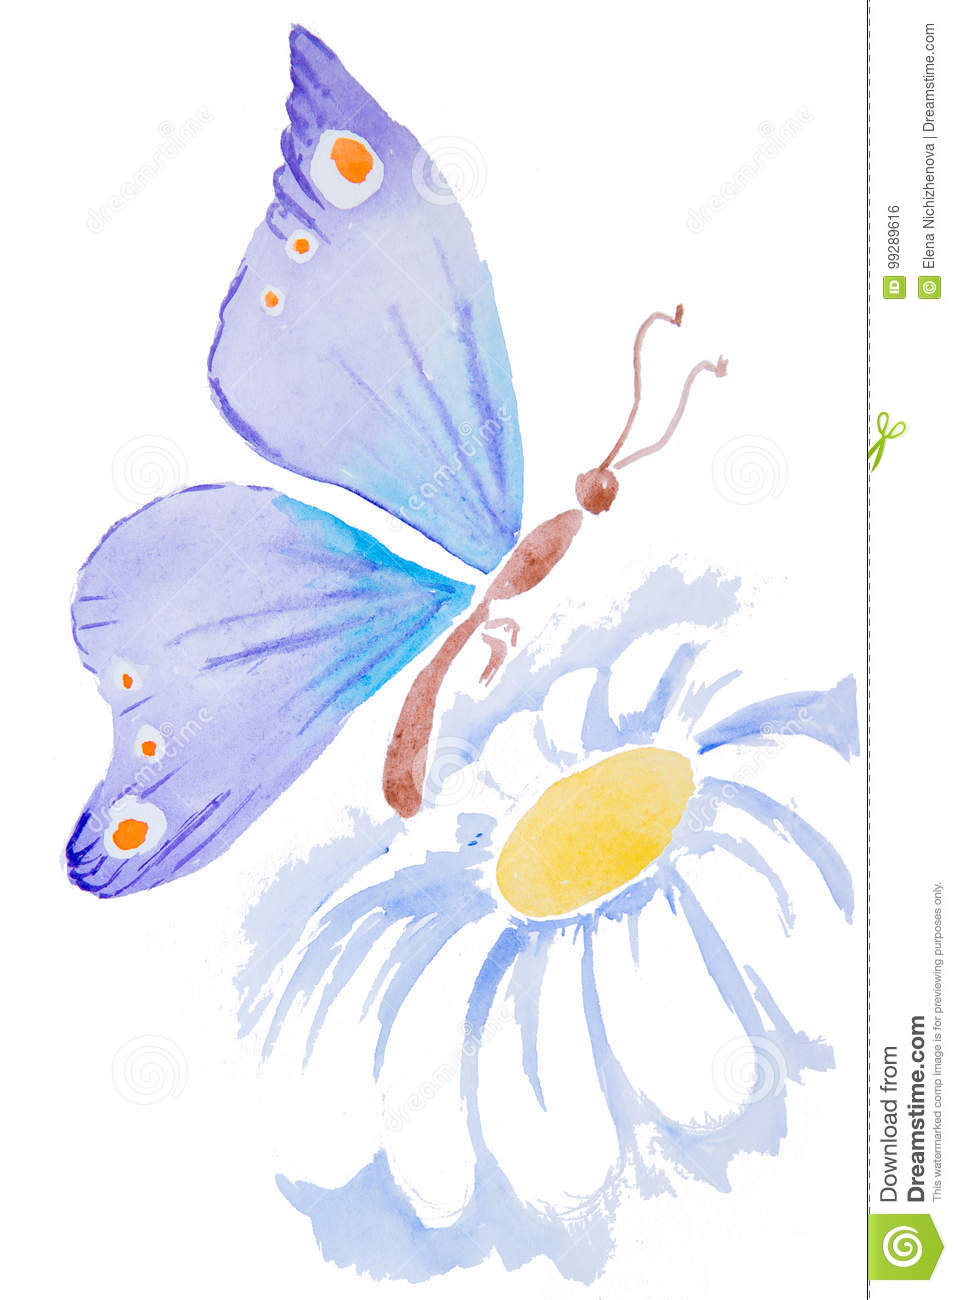 Watercolor Illustration Of A Butterfly On A Flower Stock